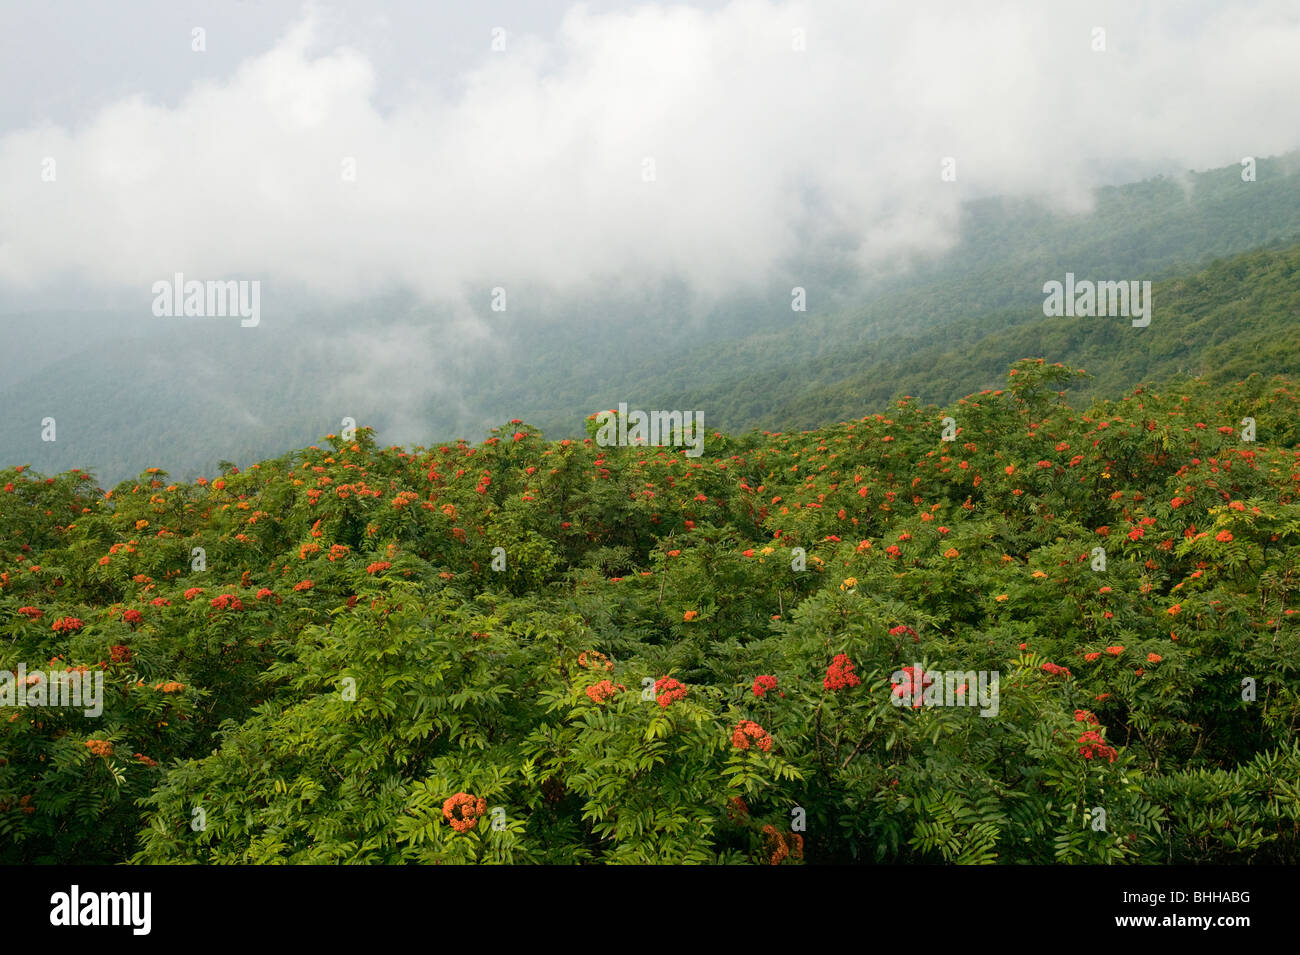 Mountains and American Mountain-ash, Craggy Gardens, North Carolina, USA. - Stock Image